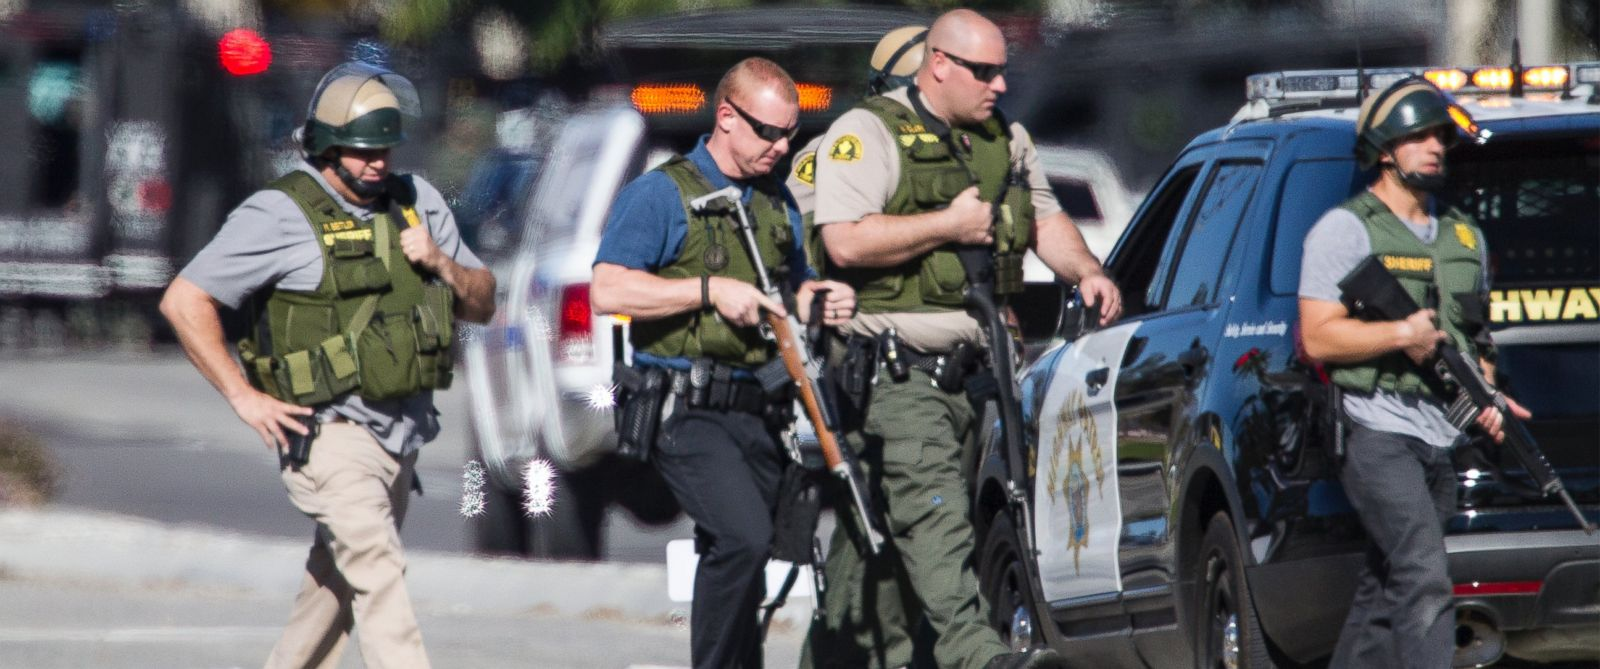 PHOTO: San Bernardino police officers in SWAT gear secure the scene where a mass shooting occurred at the Inland Regional Center on Dec. 2, 2105 in San Bernardino, Calif.